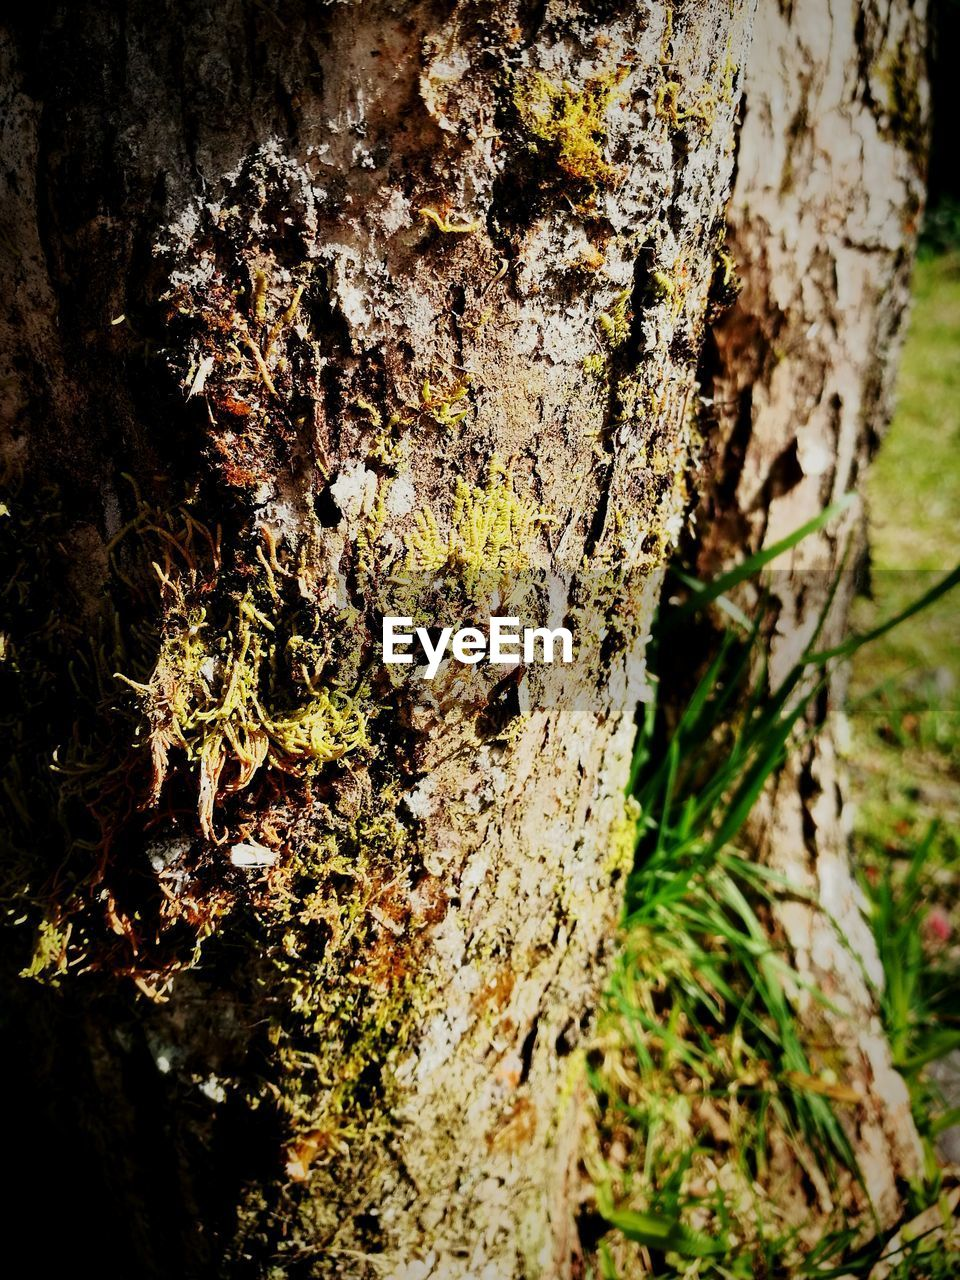 tree trunk, tree, textured, nature, growth, bark, rough, day, close-up, no people, fungus, lichen, forest, outdoors, beauty in nature